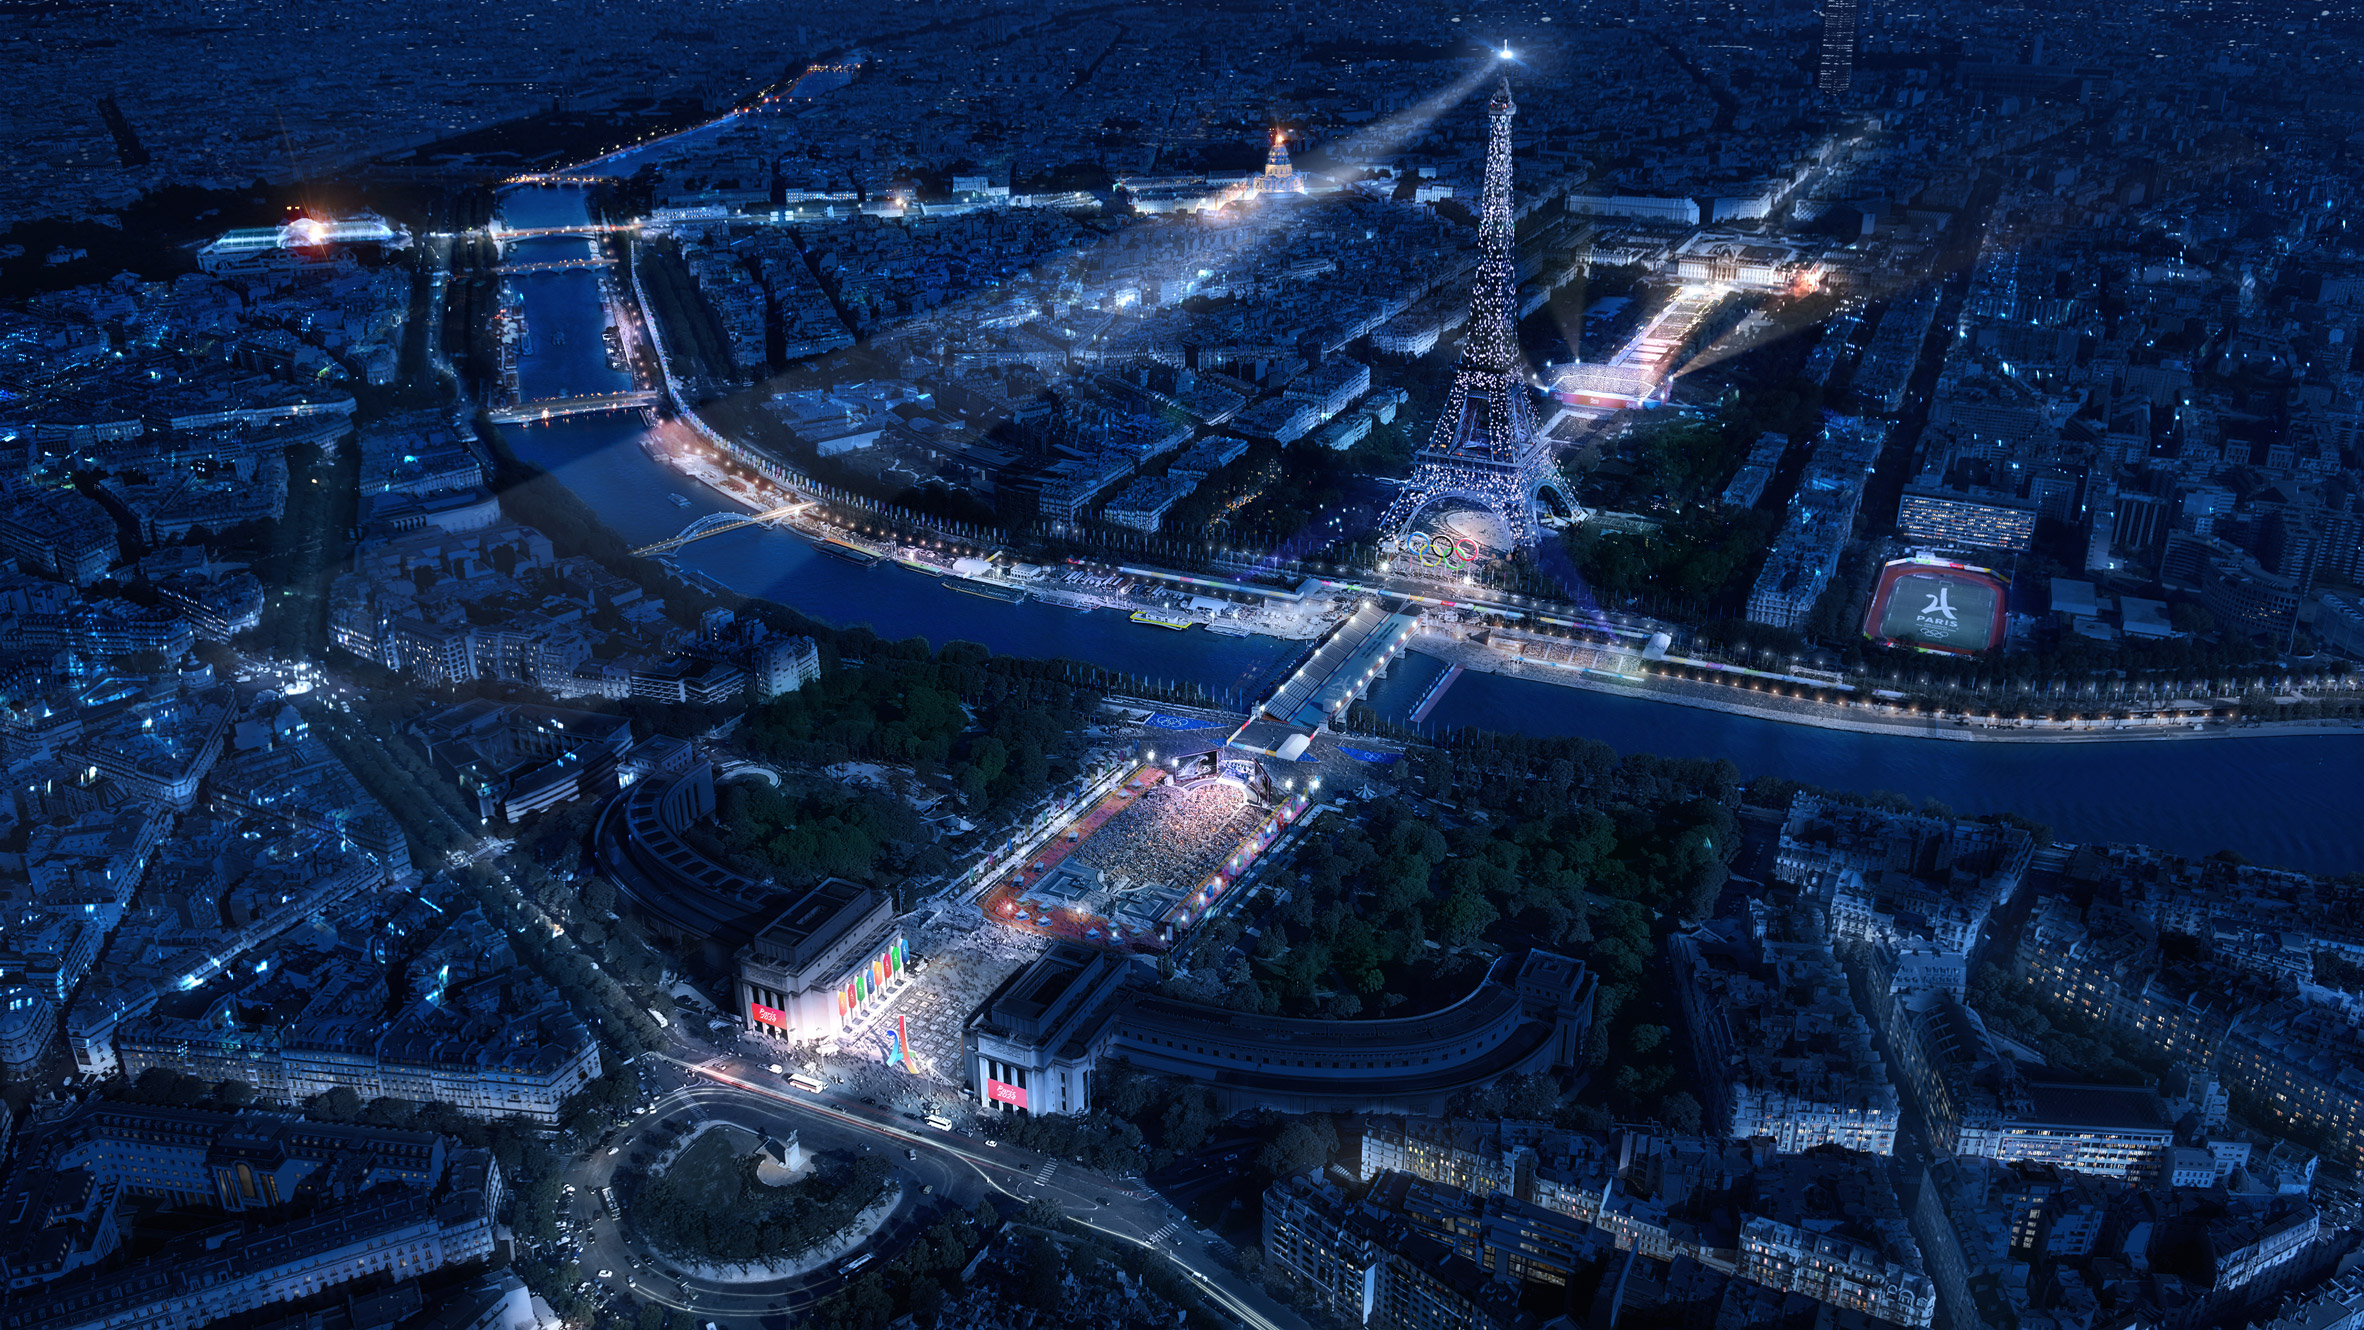 This week, Paris unveiled plans for the 2024 Olympics